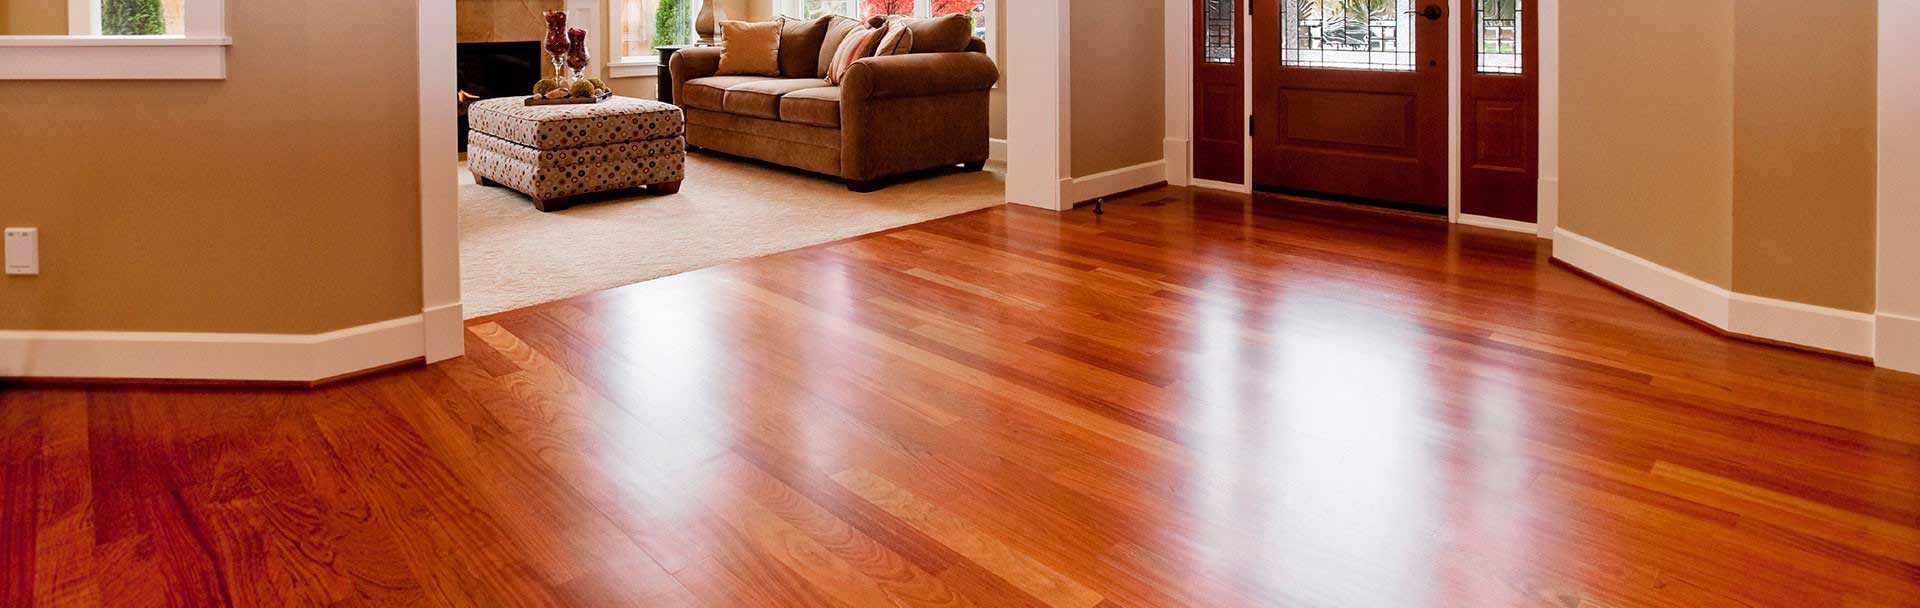 Sunnyvale hardwood floor installation refinishing repair for Sanding hardwood floors